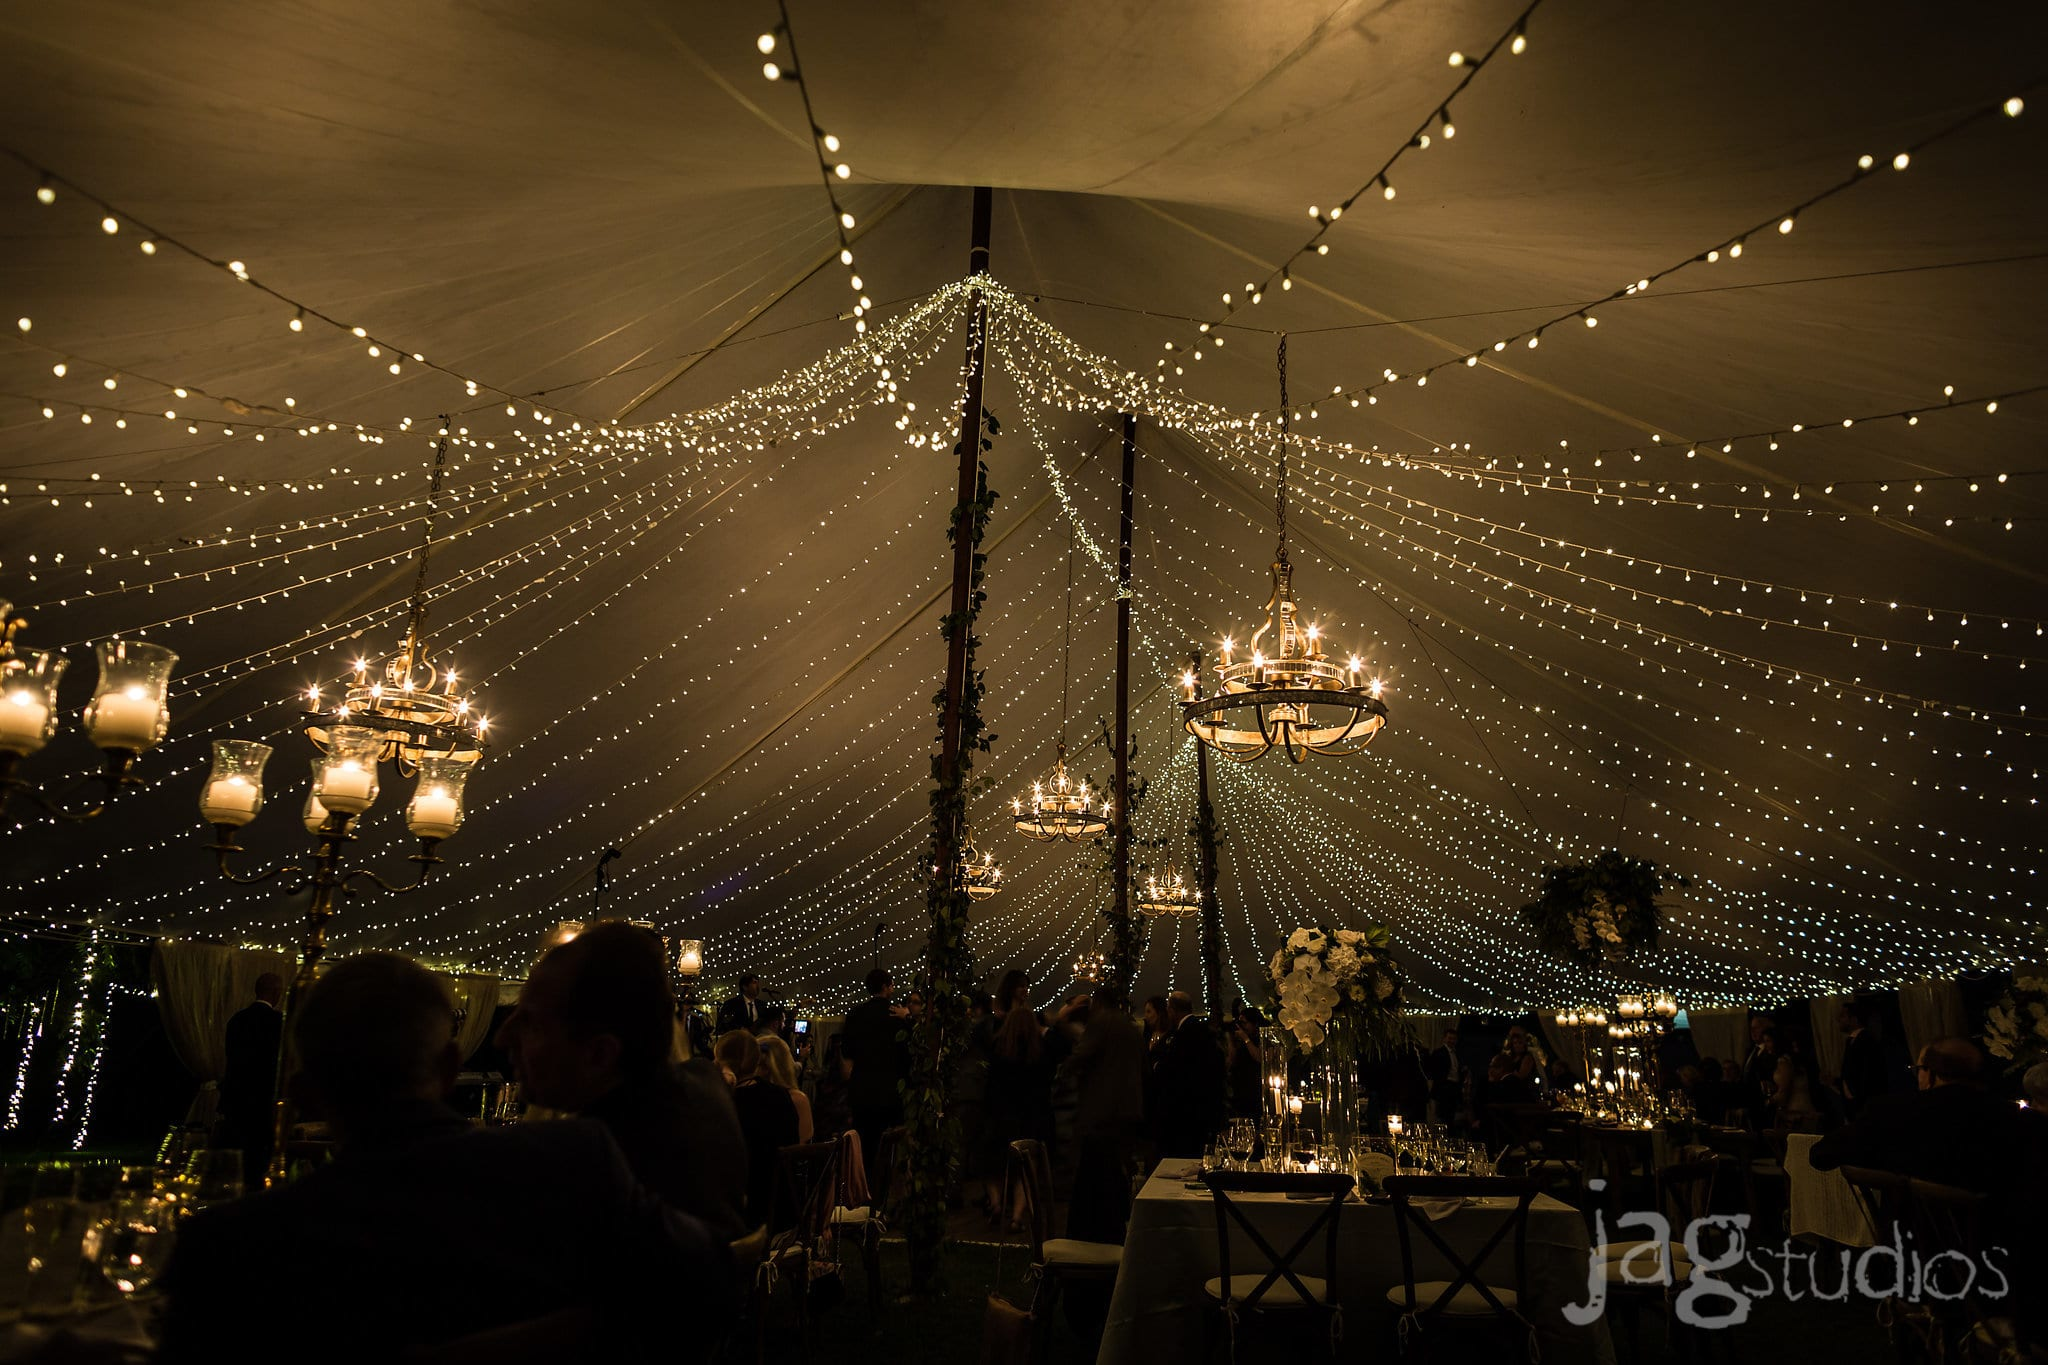 A Midnight Summer Dream lighting installation luxury New England Wedding Jaclyn Watson Events